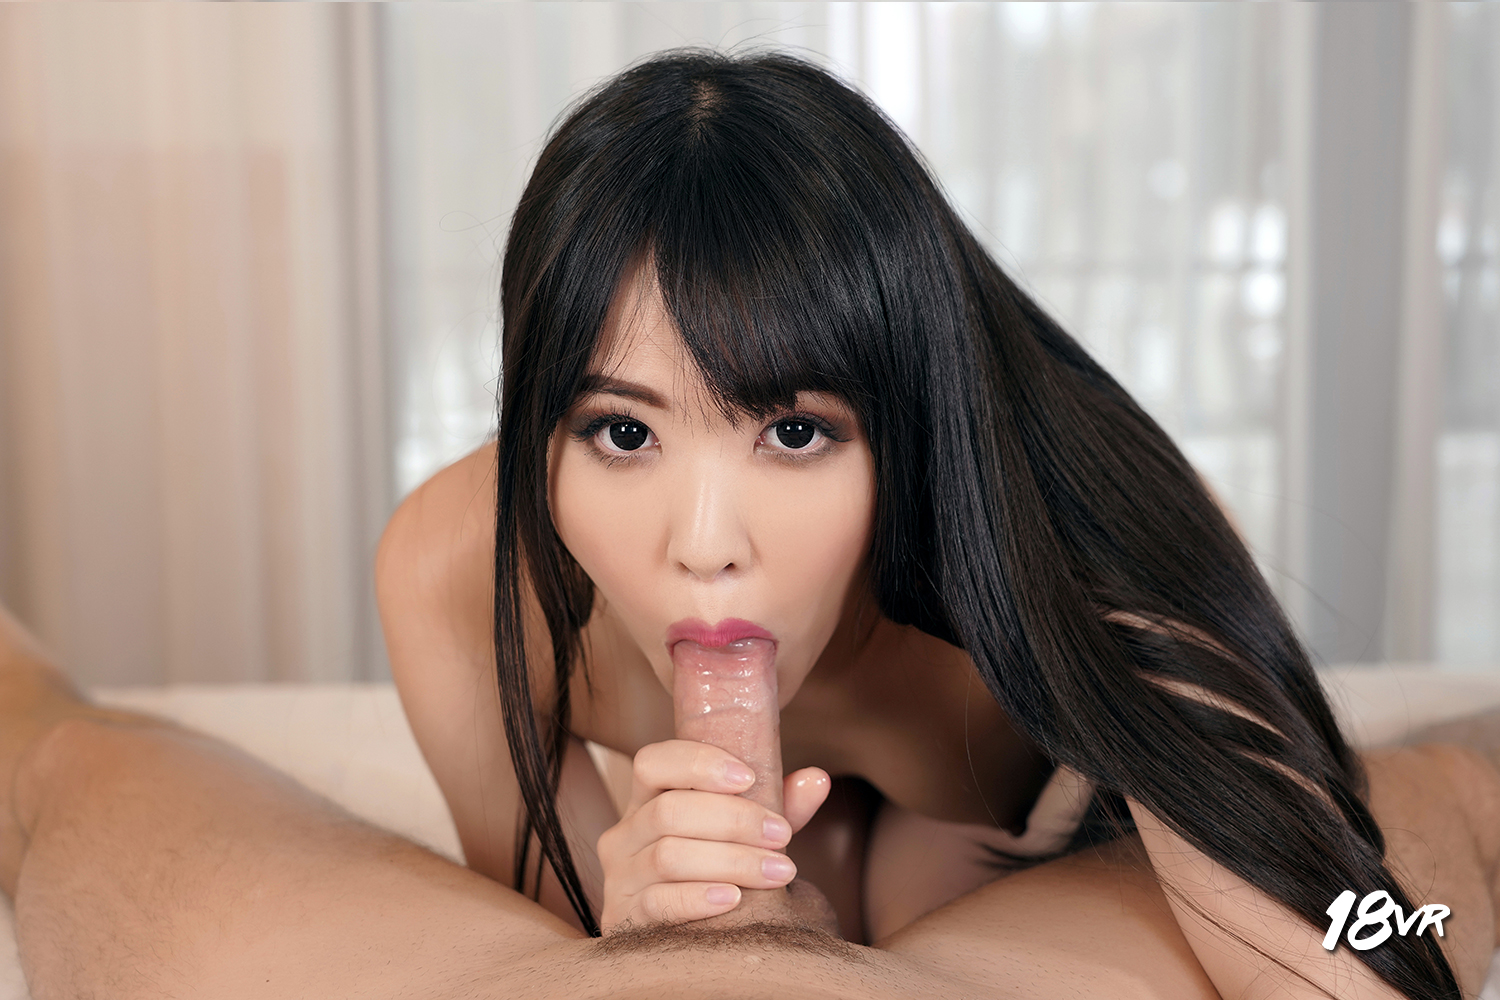 Remarkable, dick japanese girls pics sucking was